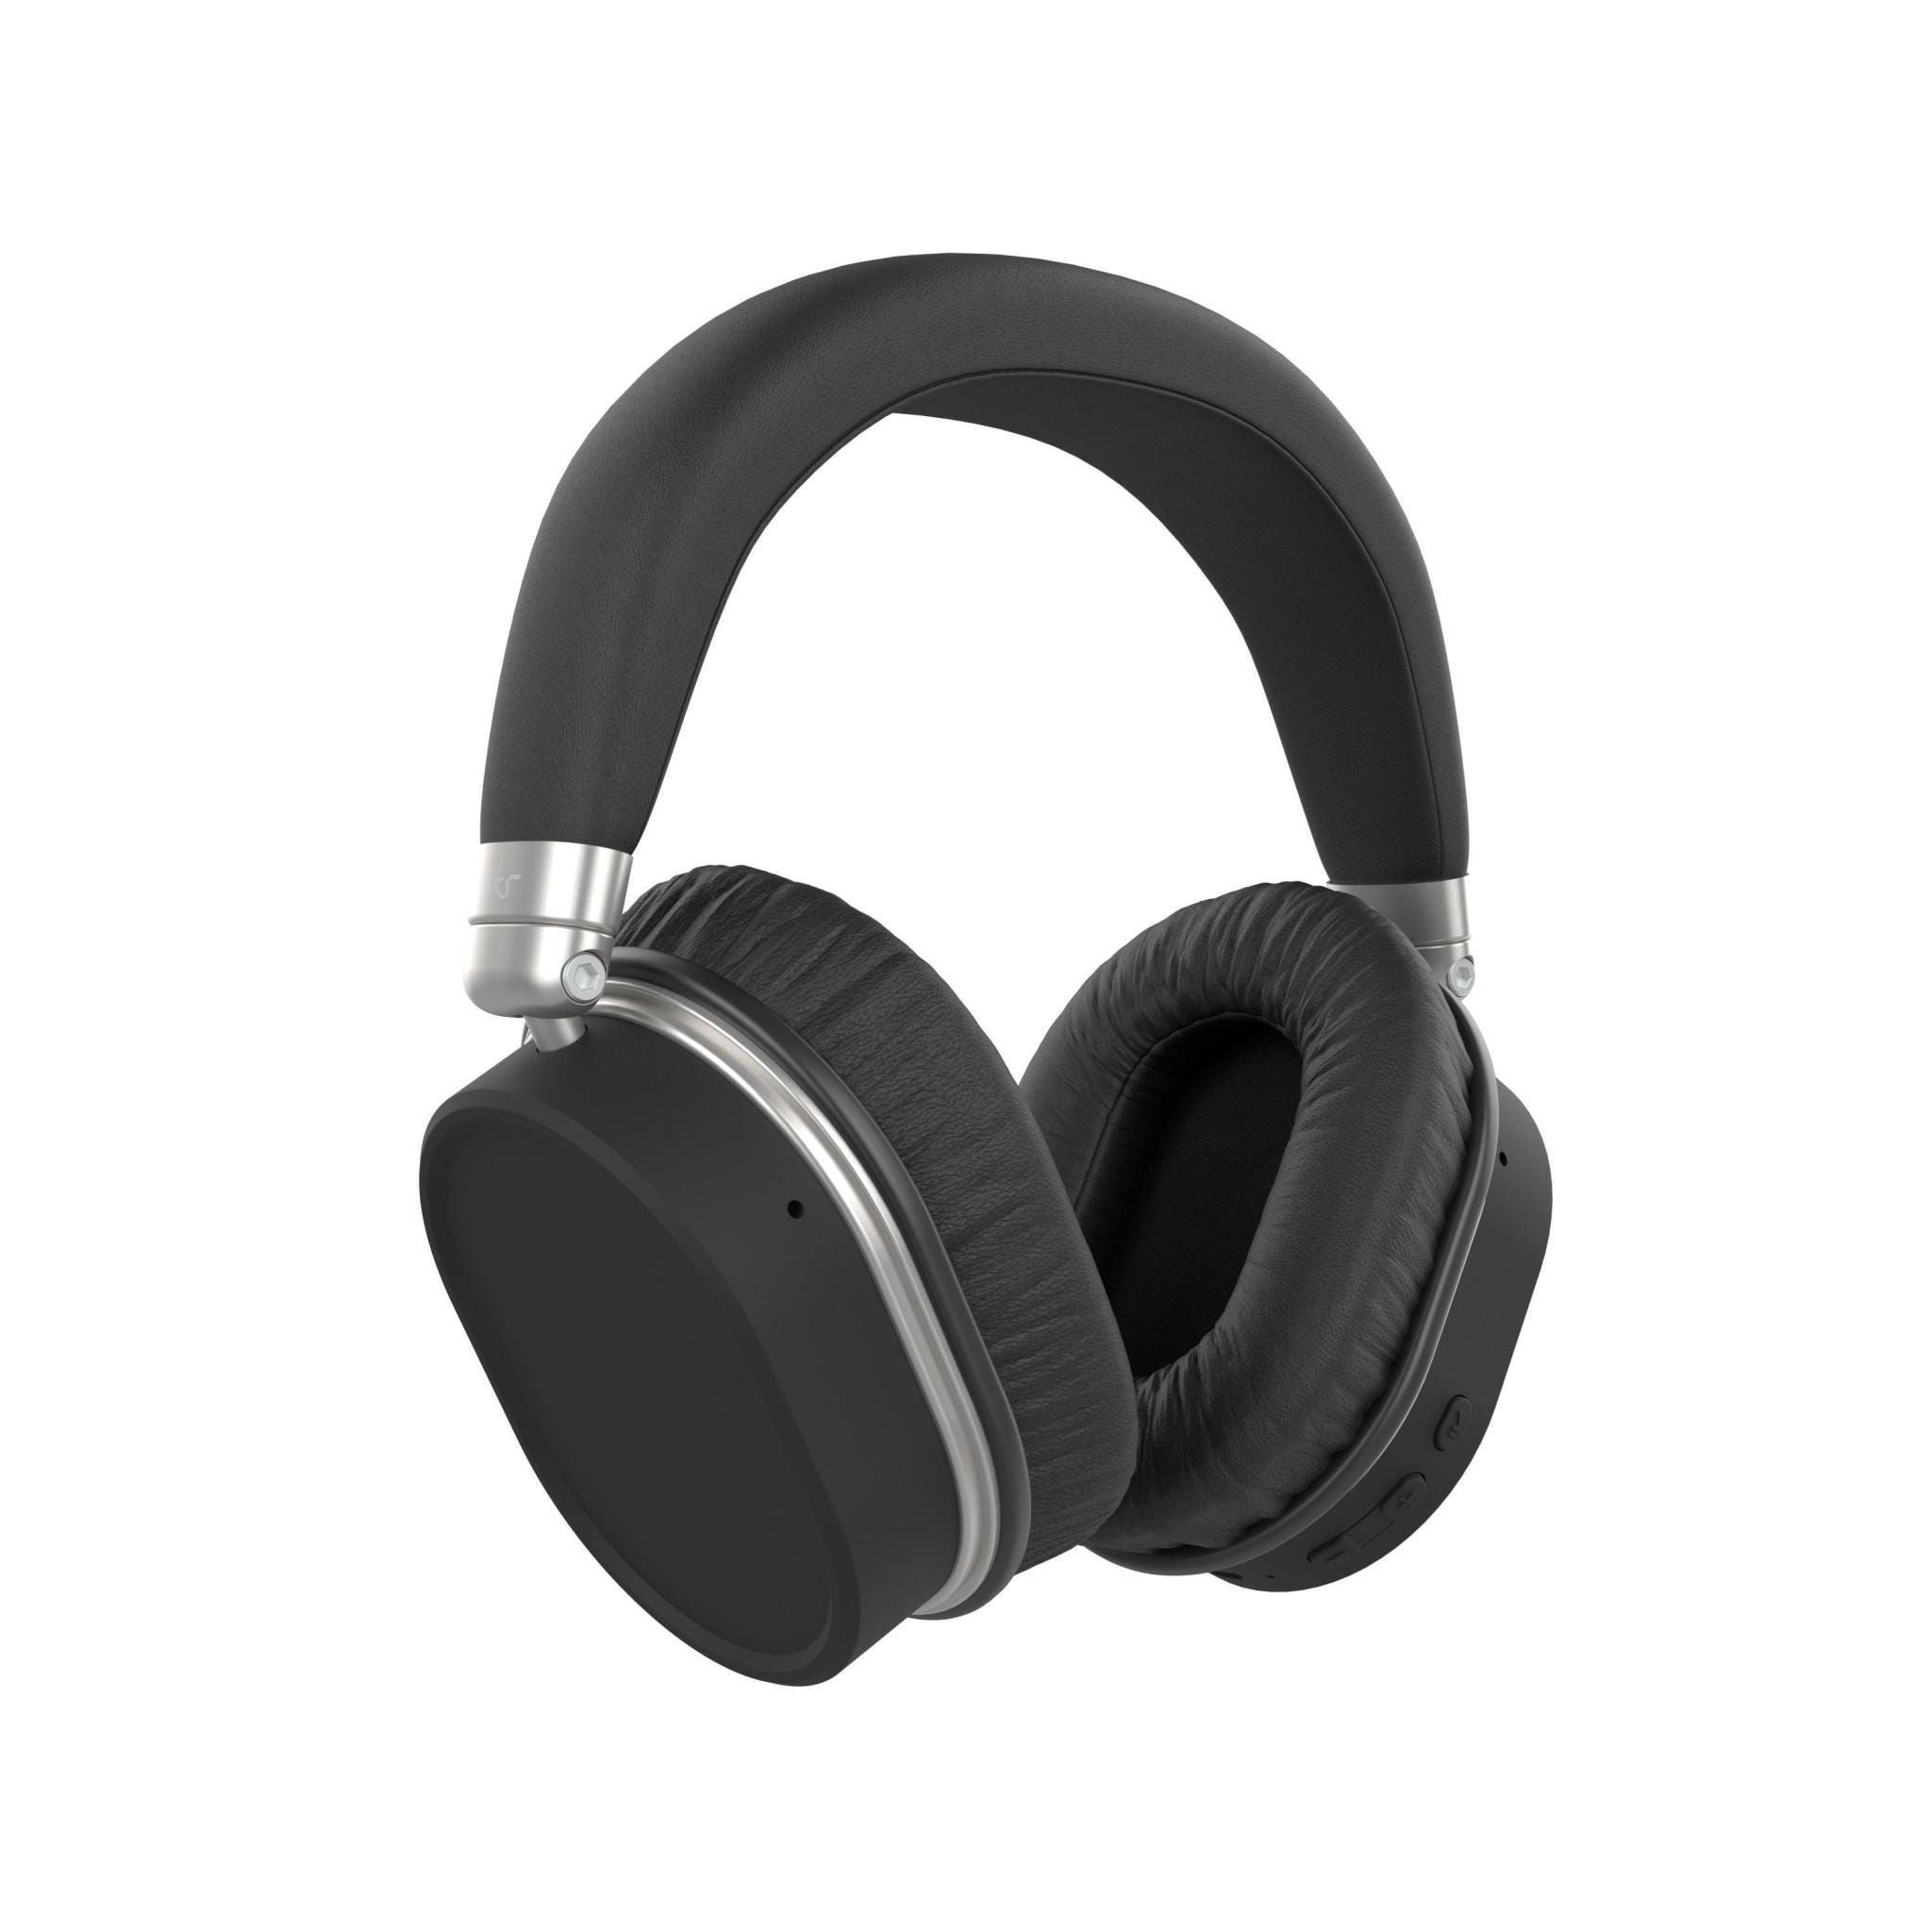 KitSound Immerse 75 Wireless Bluetooth Noise-Cancelling Over-Ear Headphones - Black